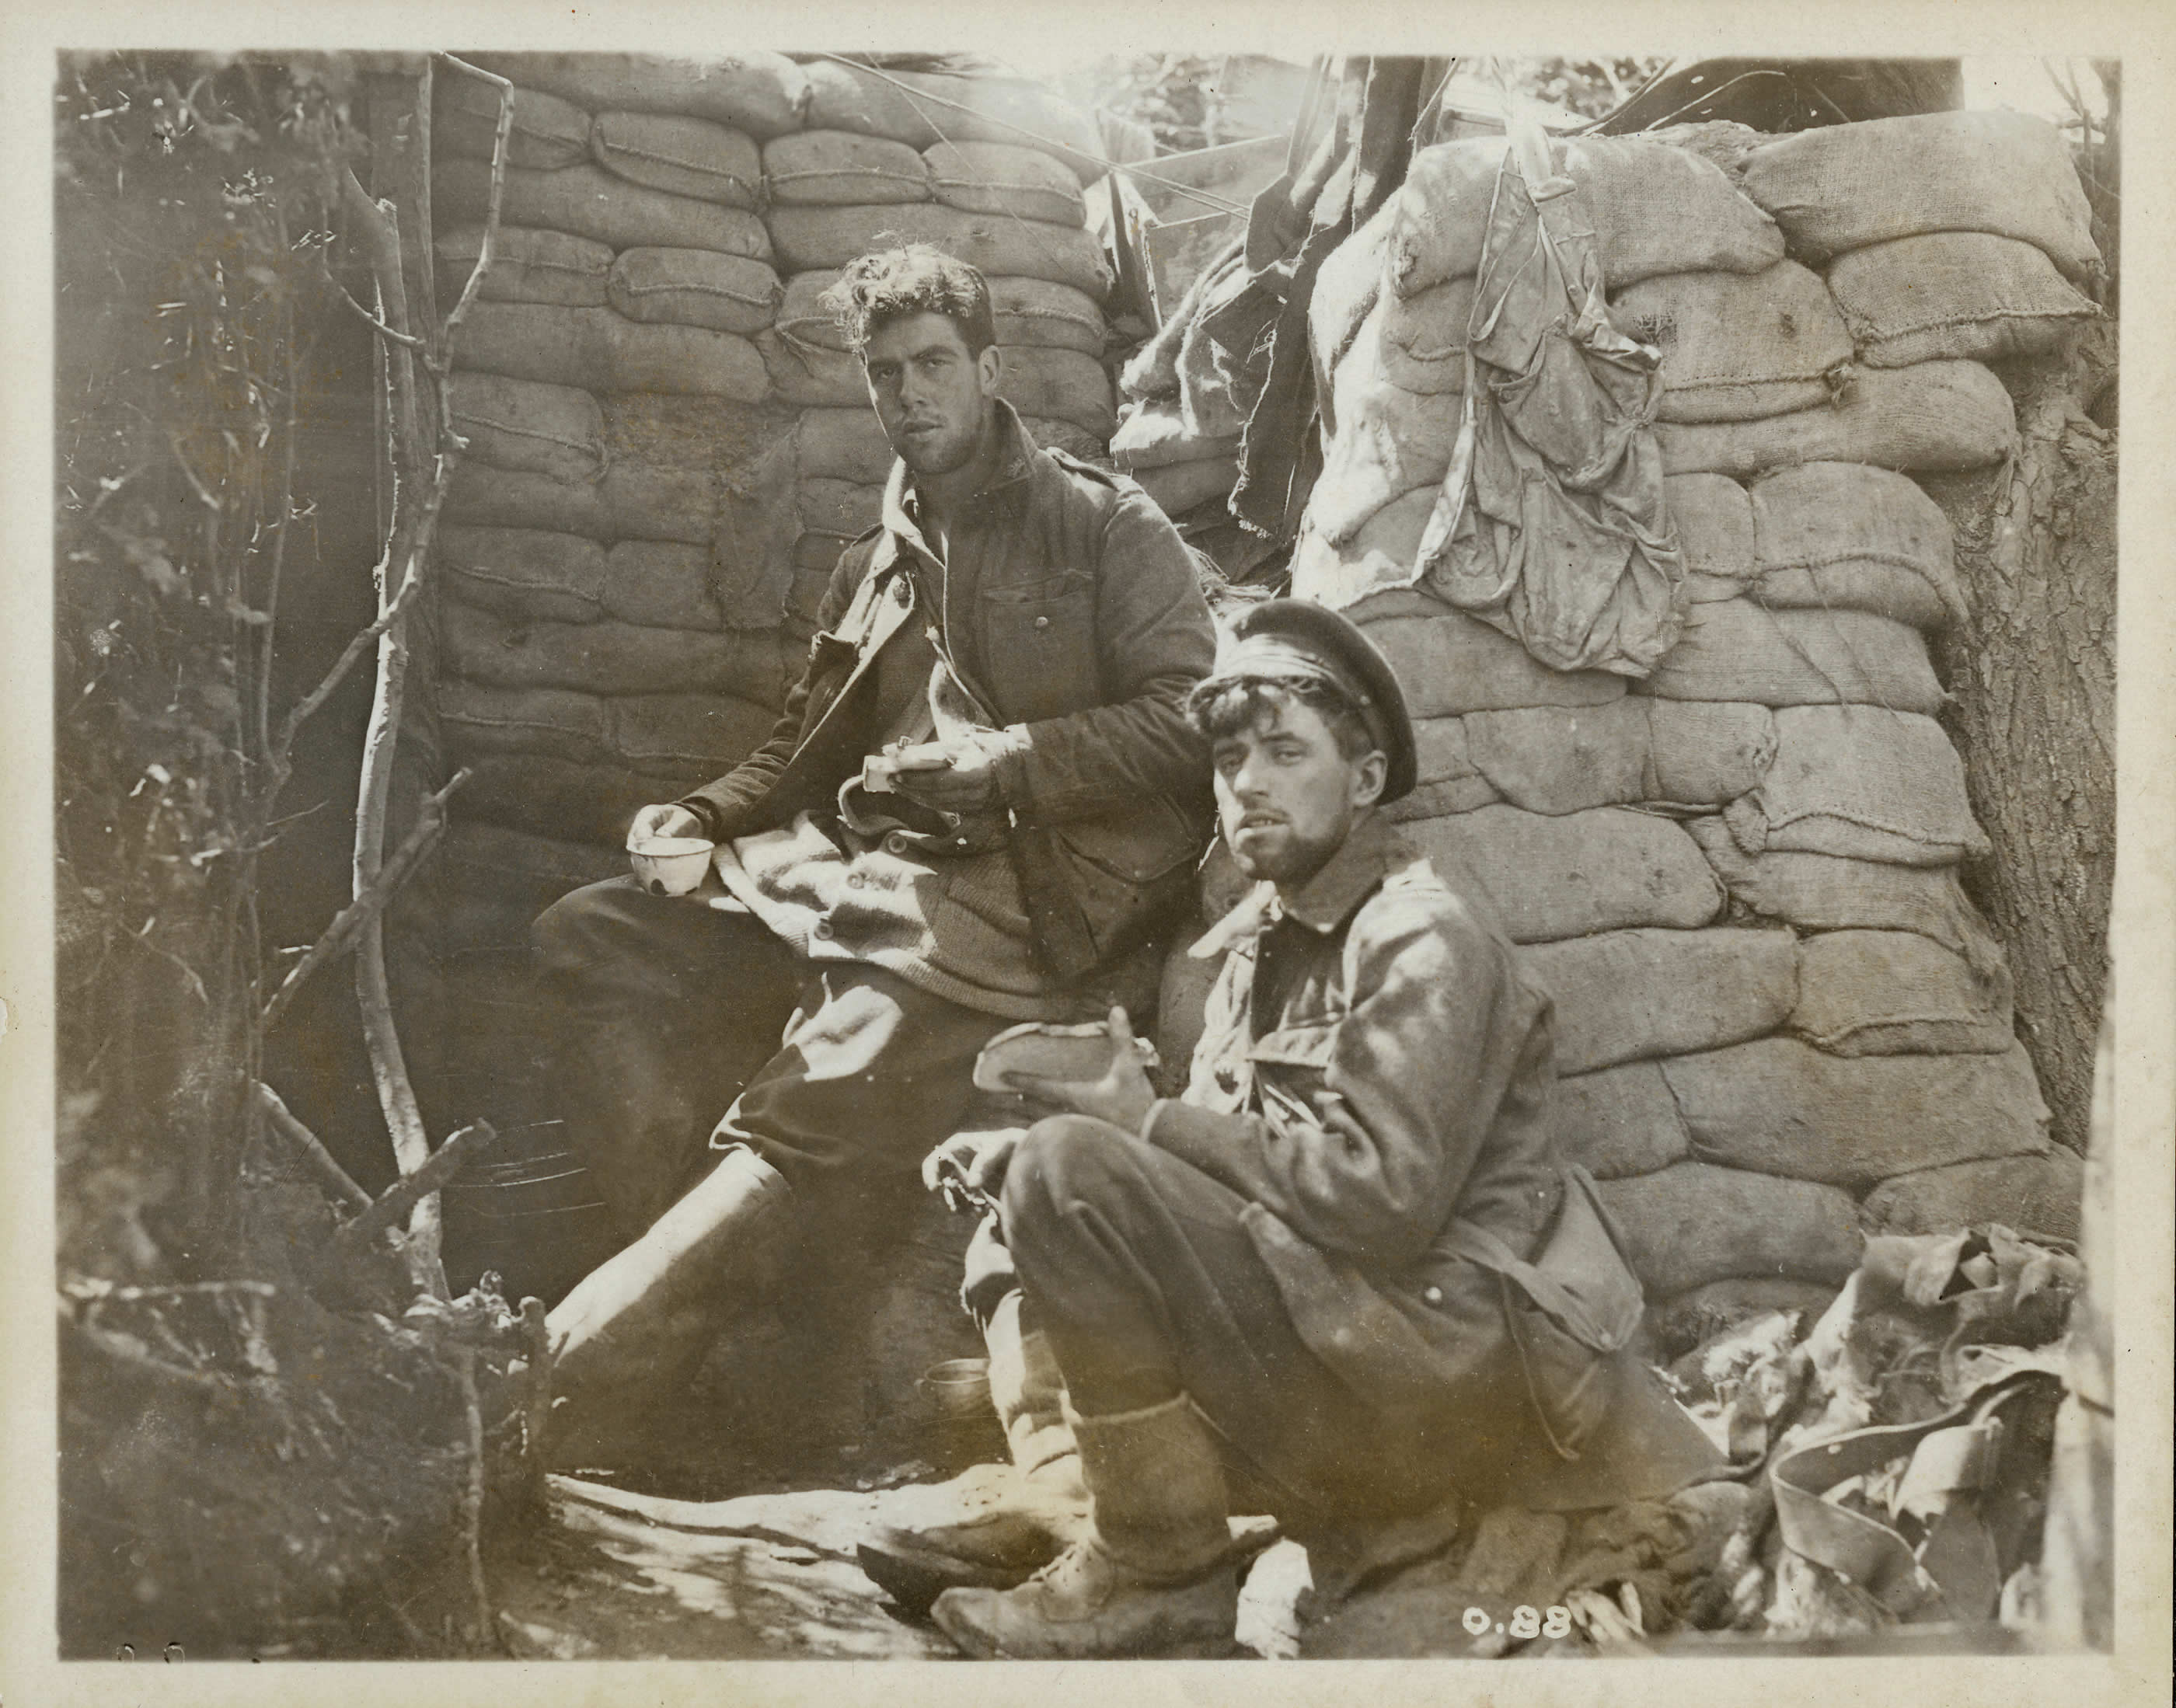 Lunch in the Trenches